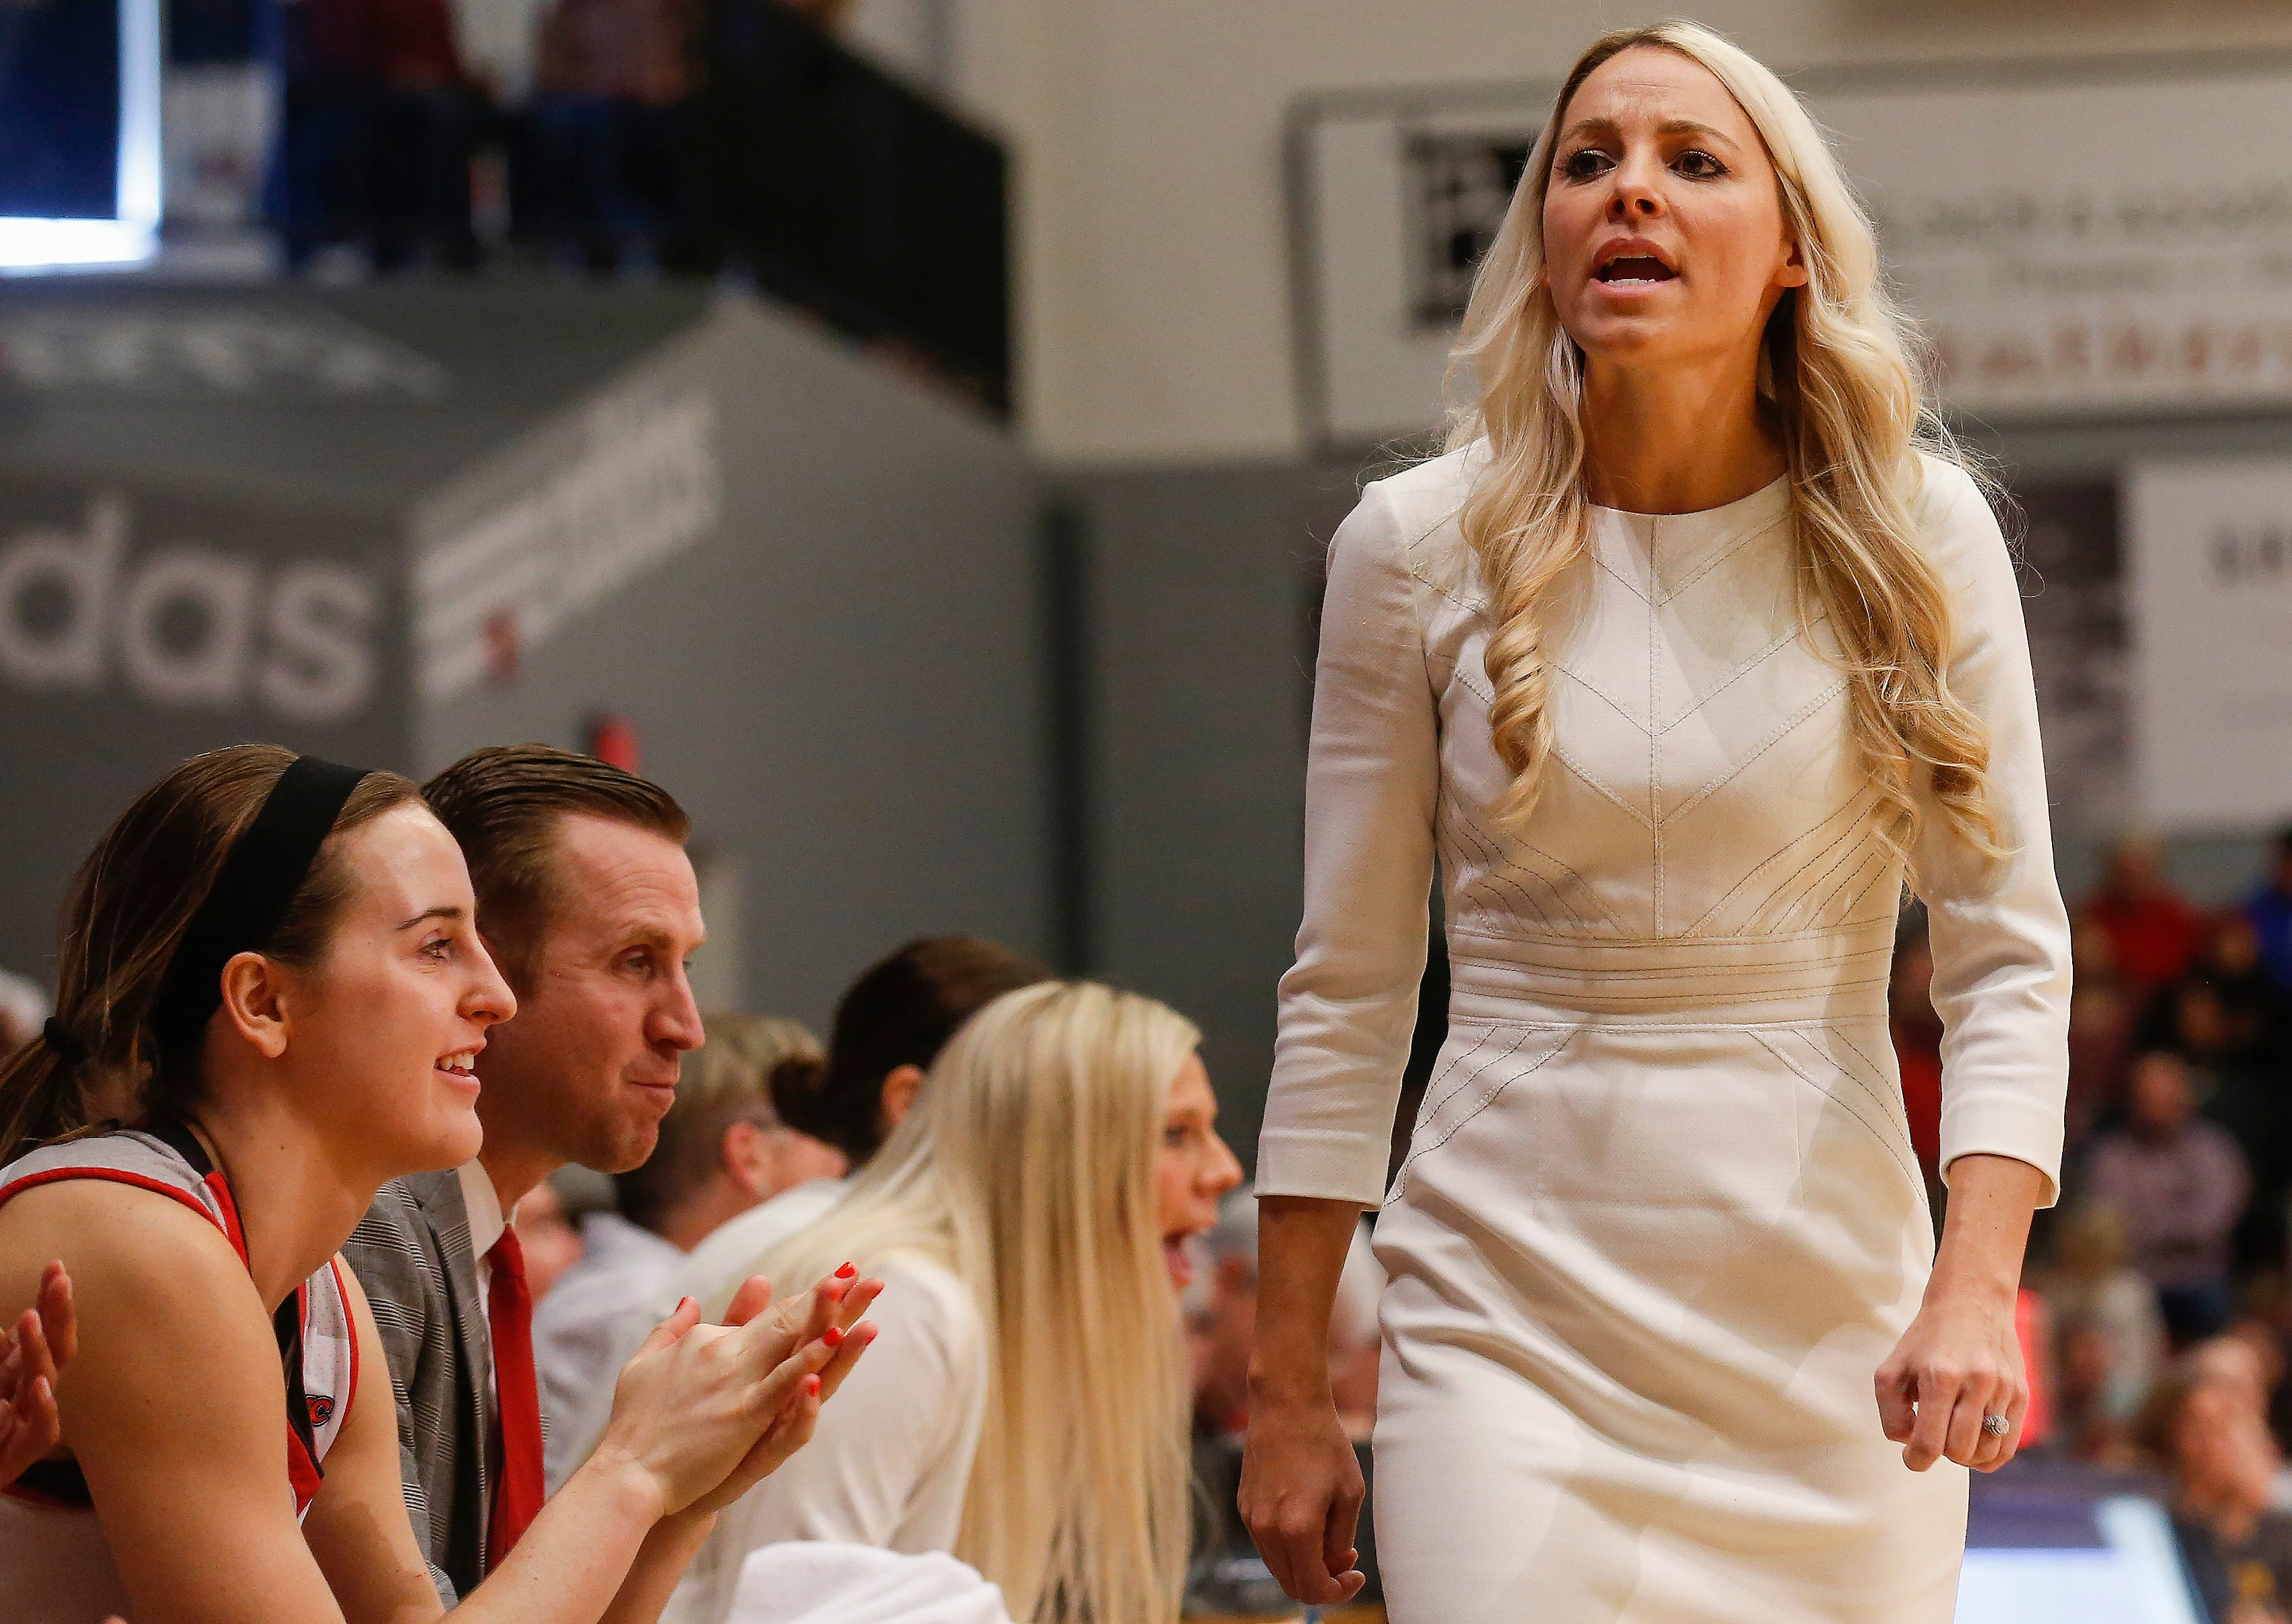 Drury head coach Molly Miller calls a player off the bench during the Lady Panthers' 77-44 win over the University of Missouri St. Louis Tritons during the Overflow the O game at the O'Reilly Family Event Center on Saturday, Feb. 9, 2019.